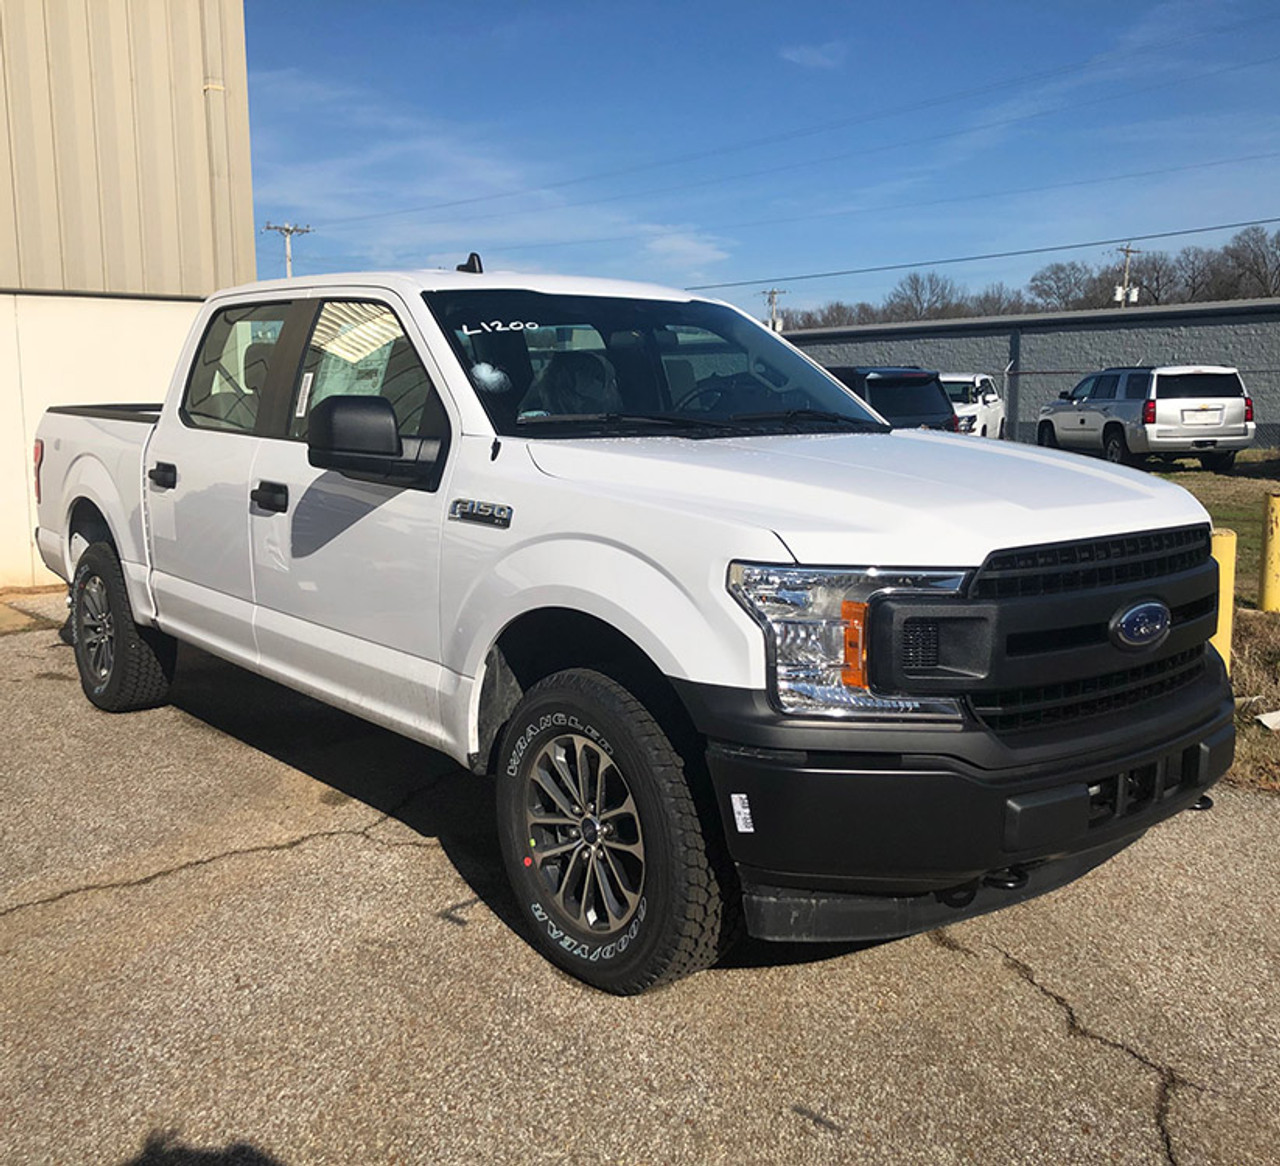 New 2020 White Ford F-150 Responder Law Enforcement Package 4x4 PPV Ecoboost, ready to be built as a Marked Patrol Package, choose any color LED Lights, + Delivery